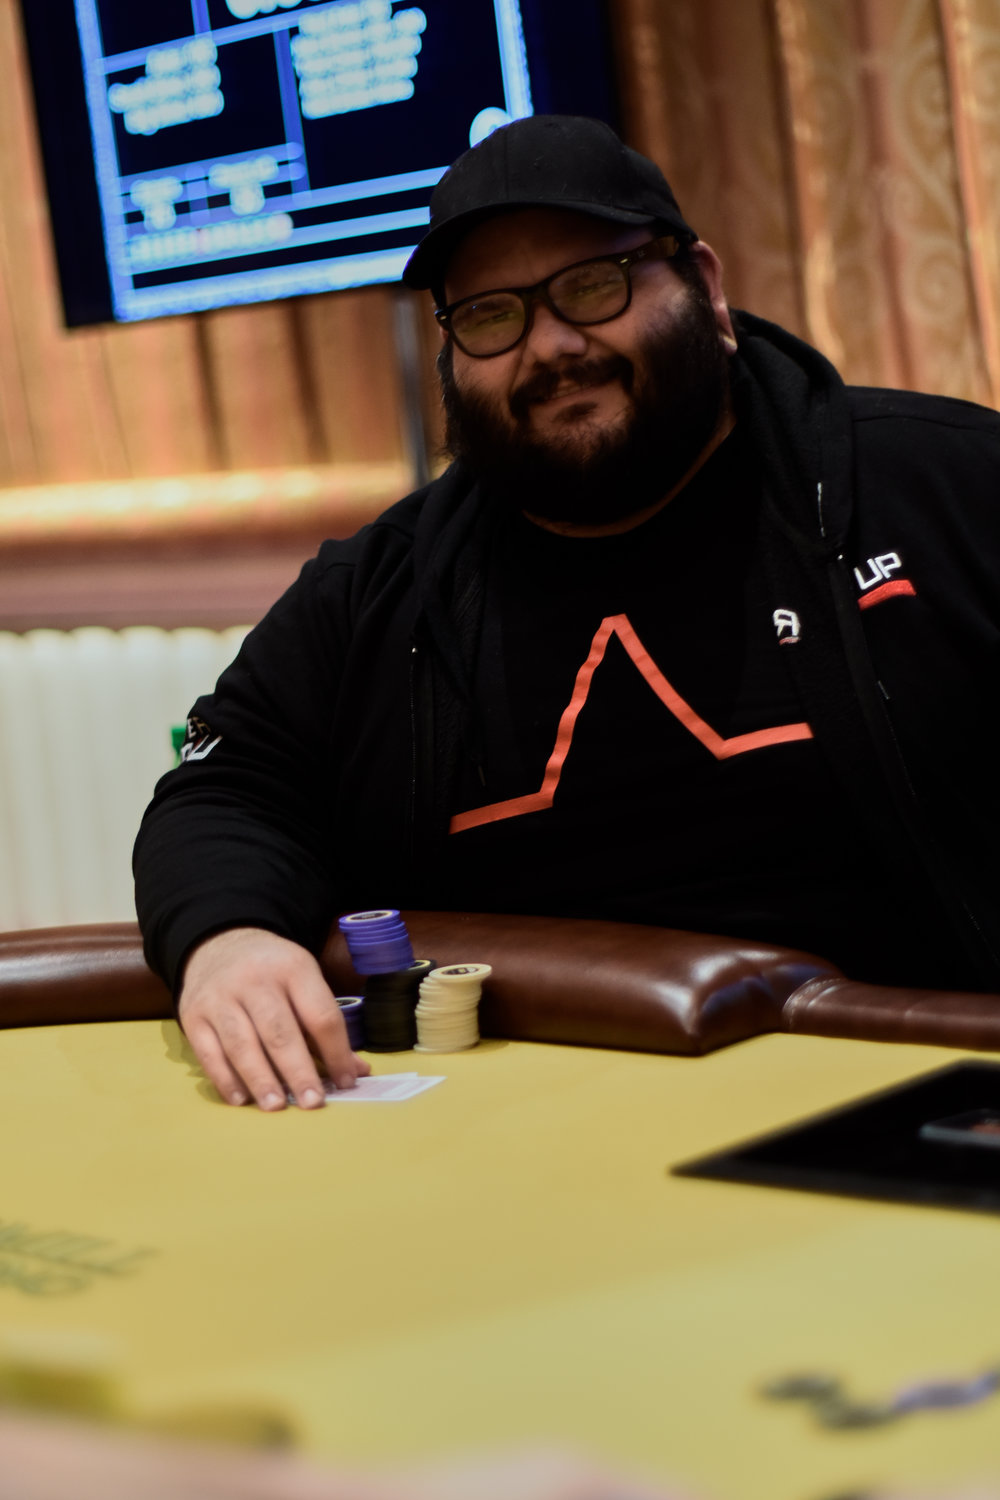 Team RIU's Pablo Ortiz has made the final table with Harry Corvese